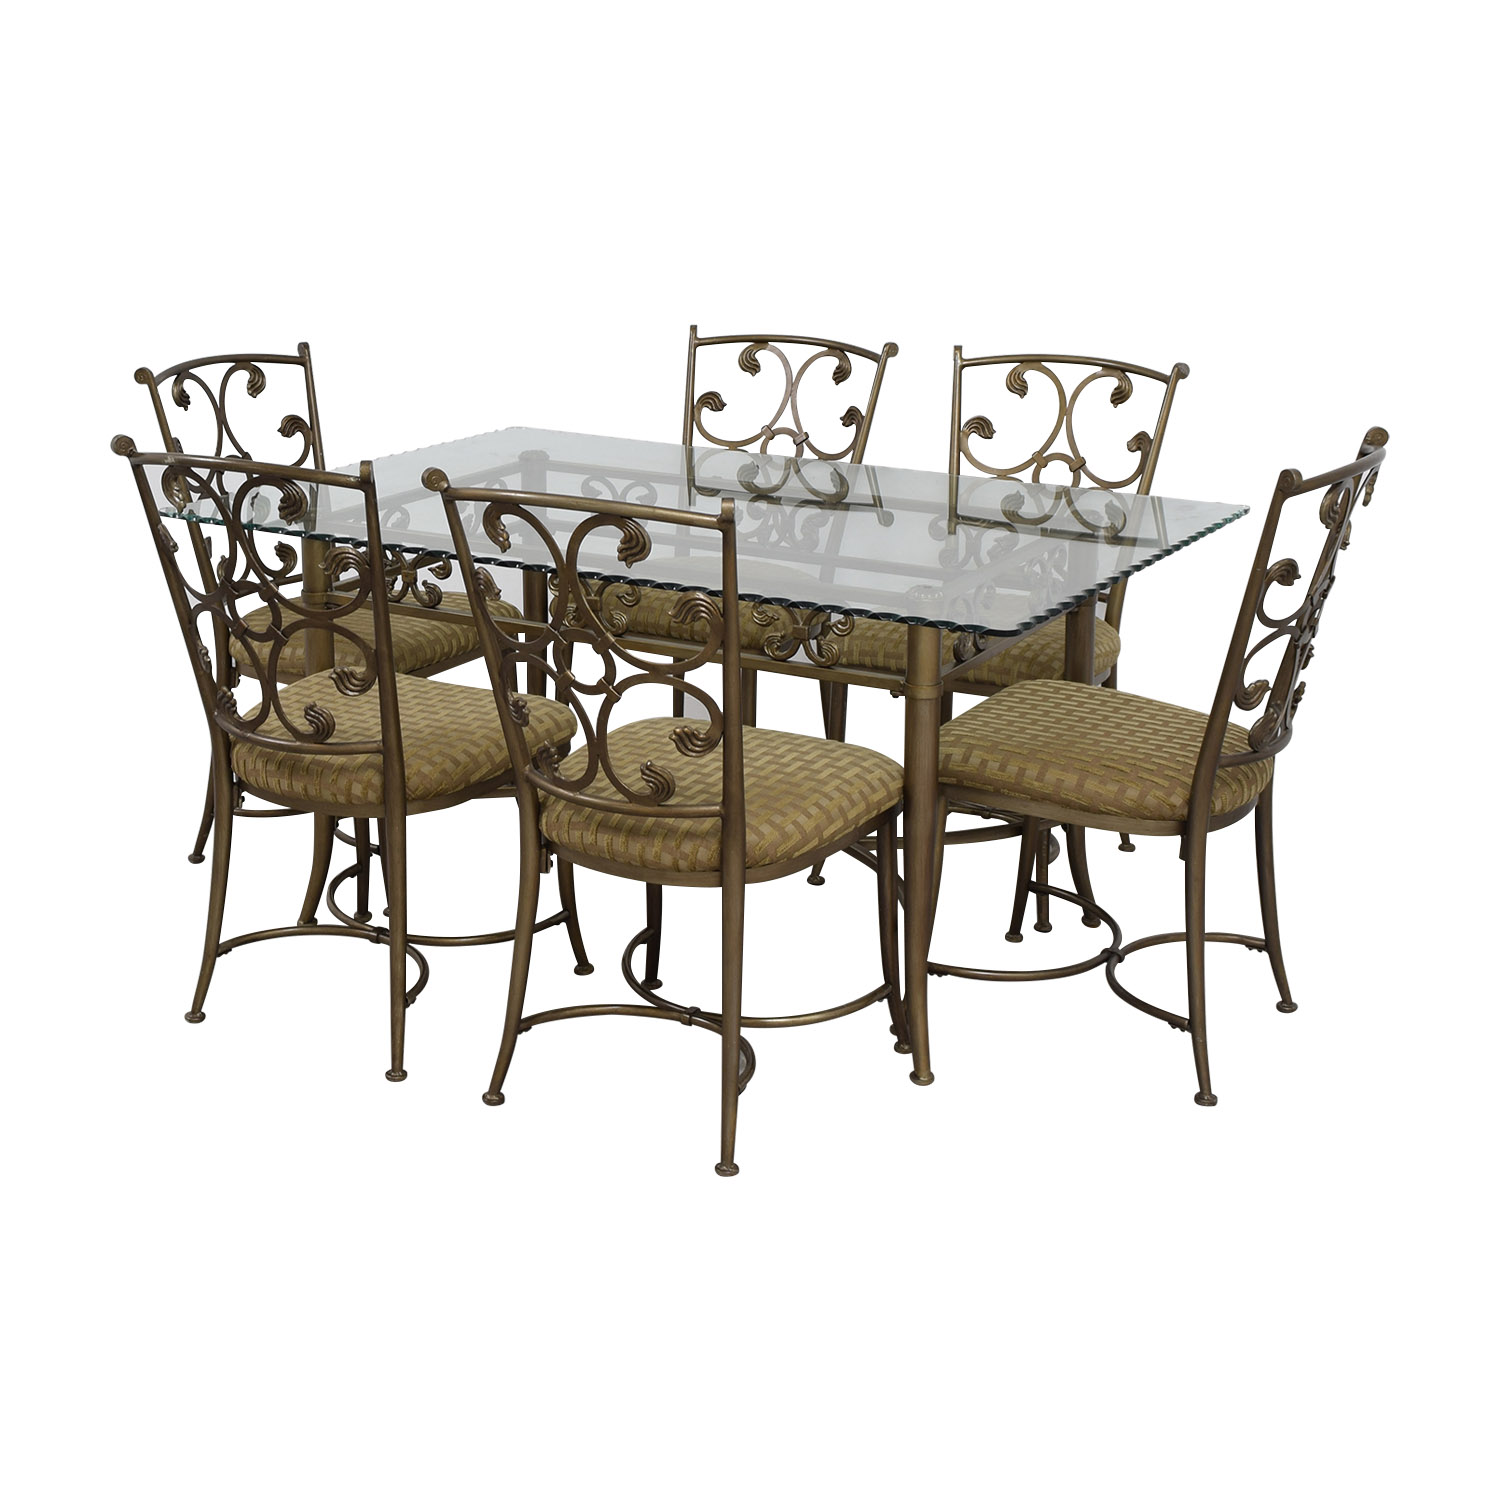 90 Off Glass And Gold Wrought Iron Dining Set Tables